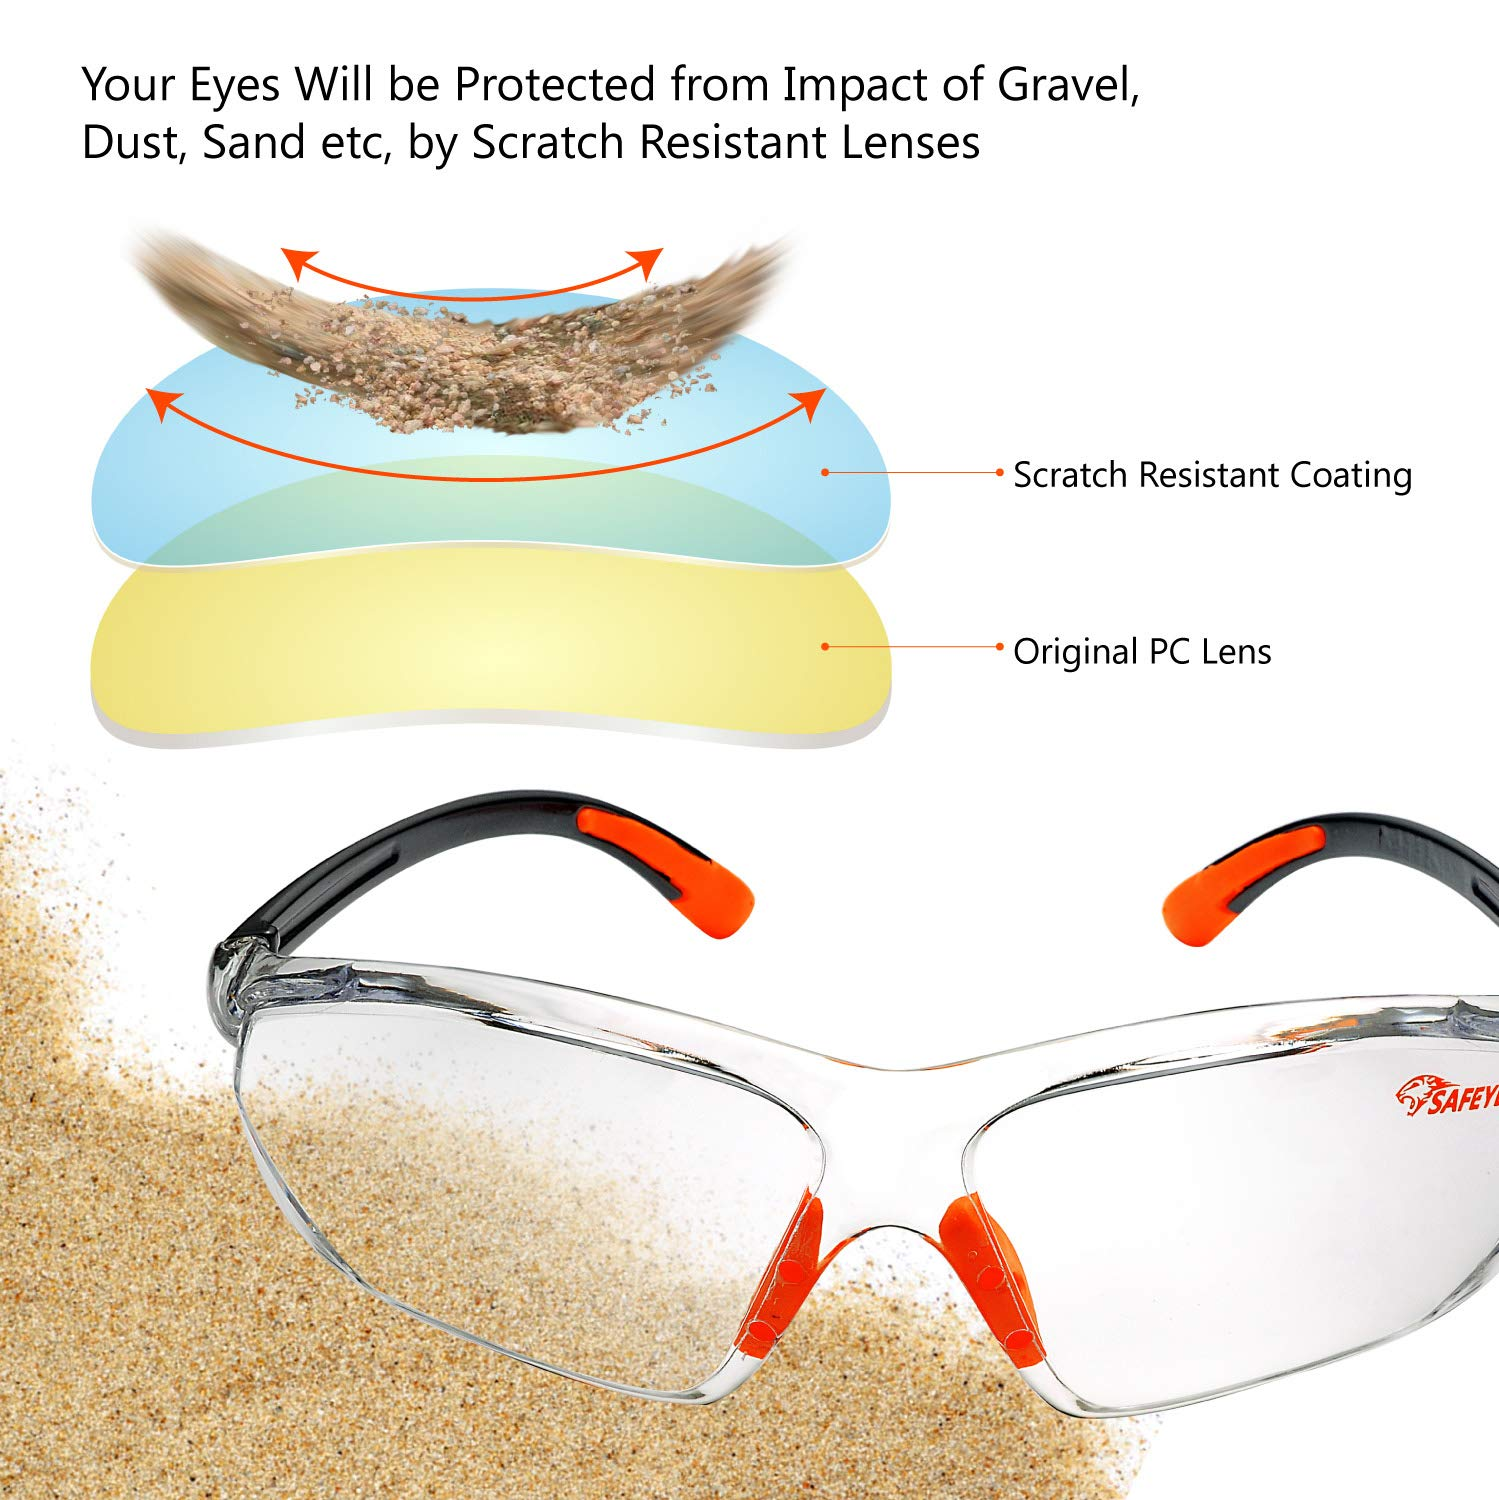 Safeyear Anti-fog Wraparound Safety Glasses SG010 EN166 Mens Safety Goggles UV Protective PPE Airsoft Glasses Women Eye Protection Work,Lab etc Infield Plastic Ladies Airsoft Goggles for DIY Job